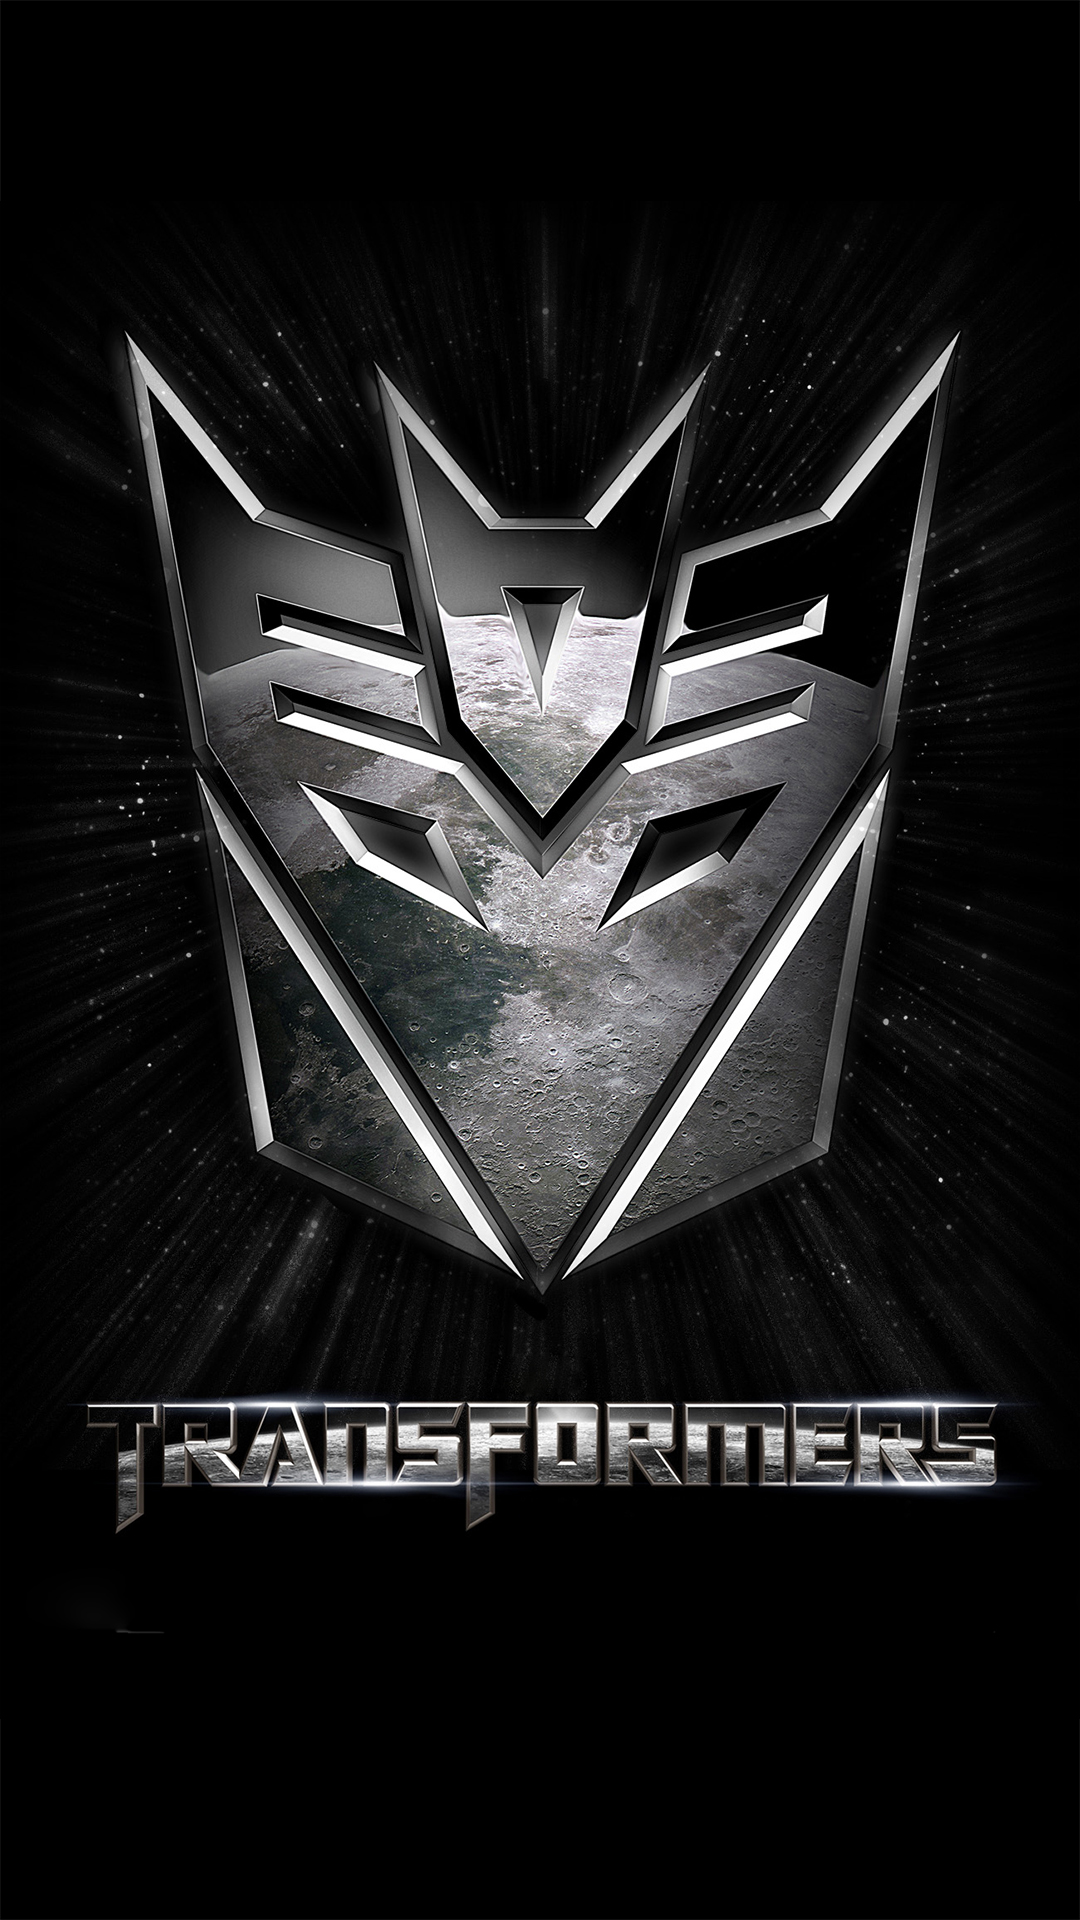 transformers dark of the moon - best htc one wallpapers, free and